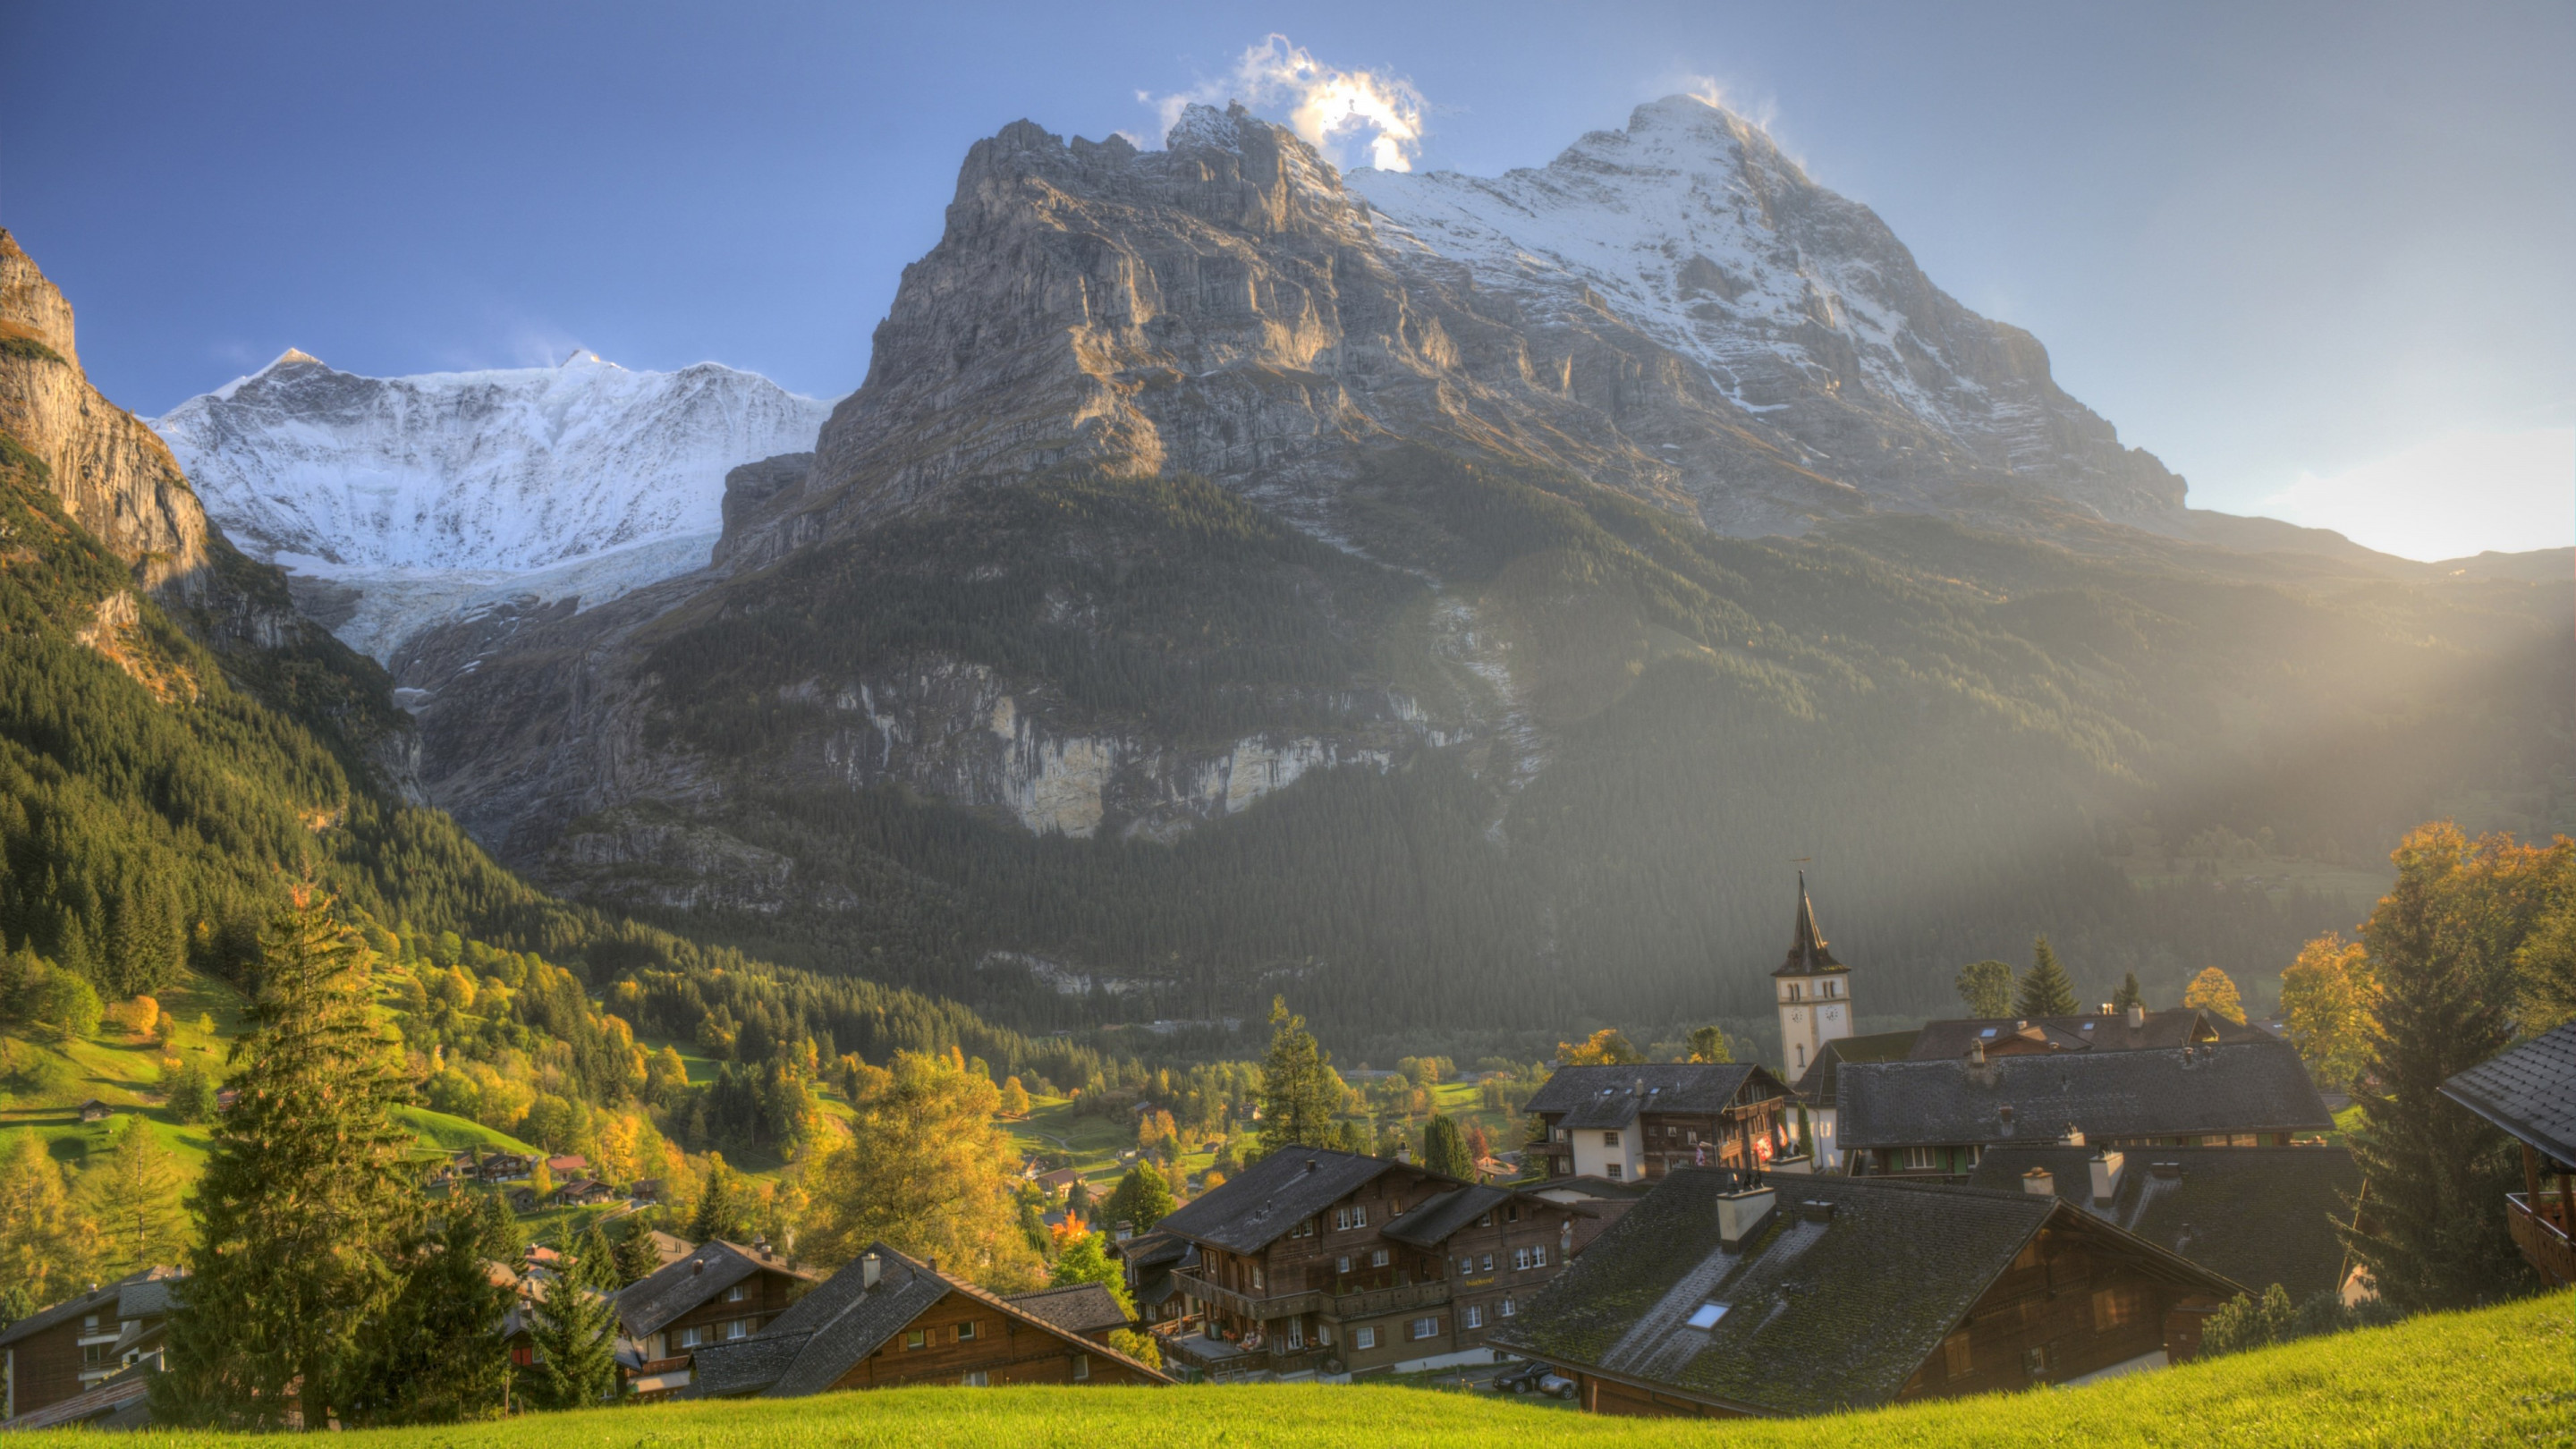 Best landscape from Bernese Alps | 2880x1620 wallpaper